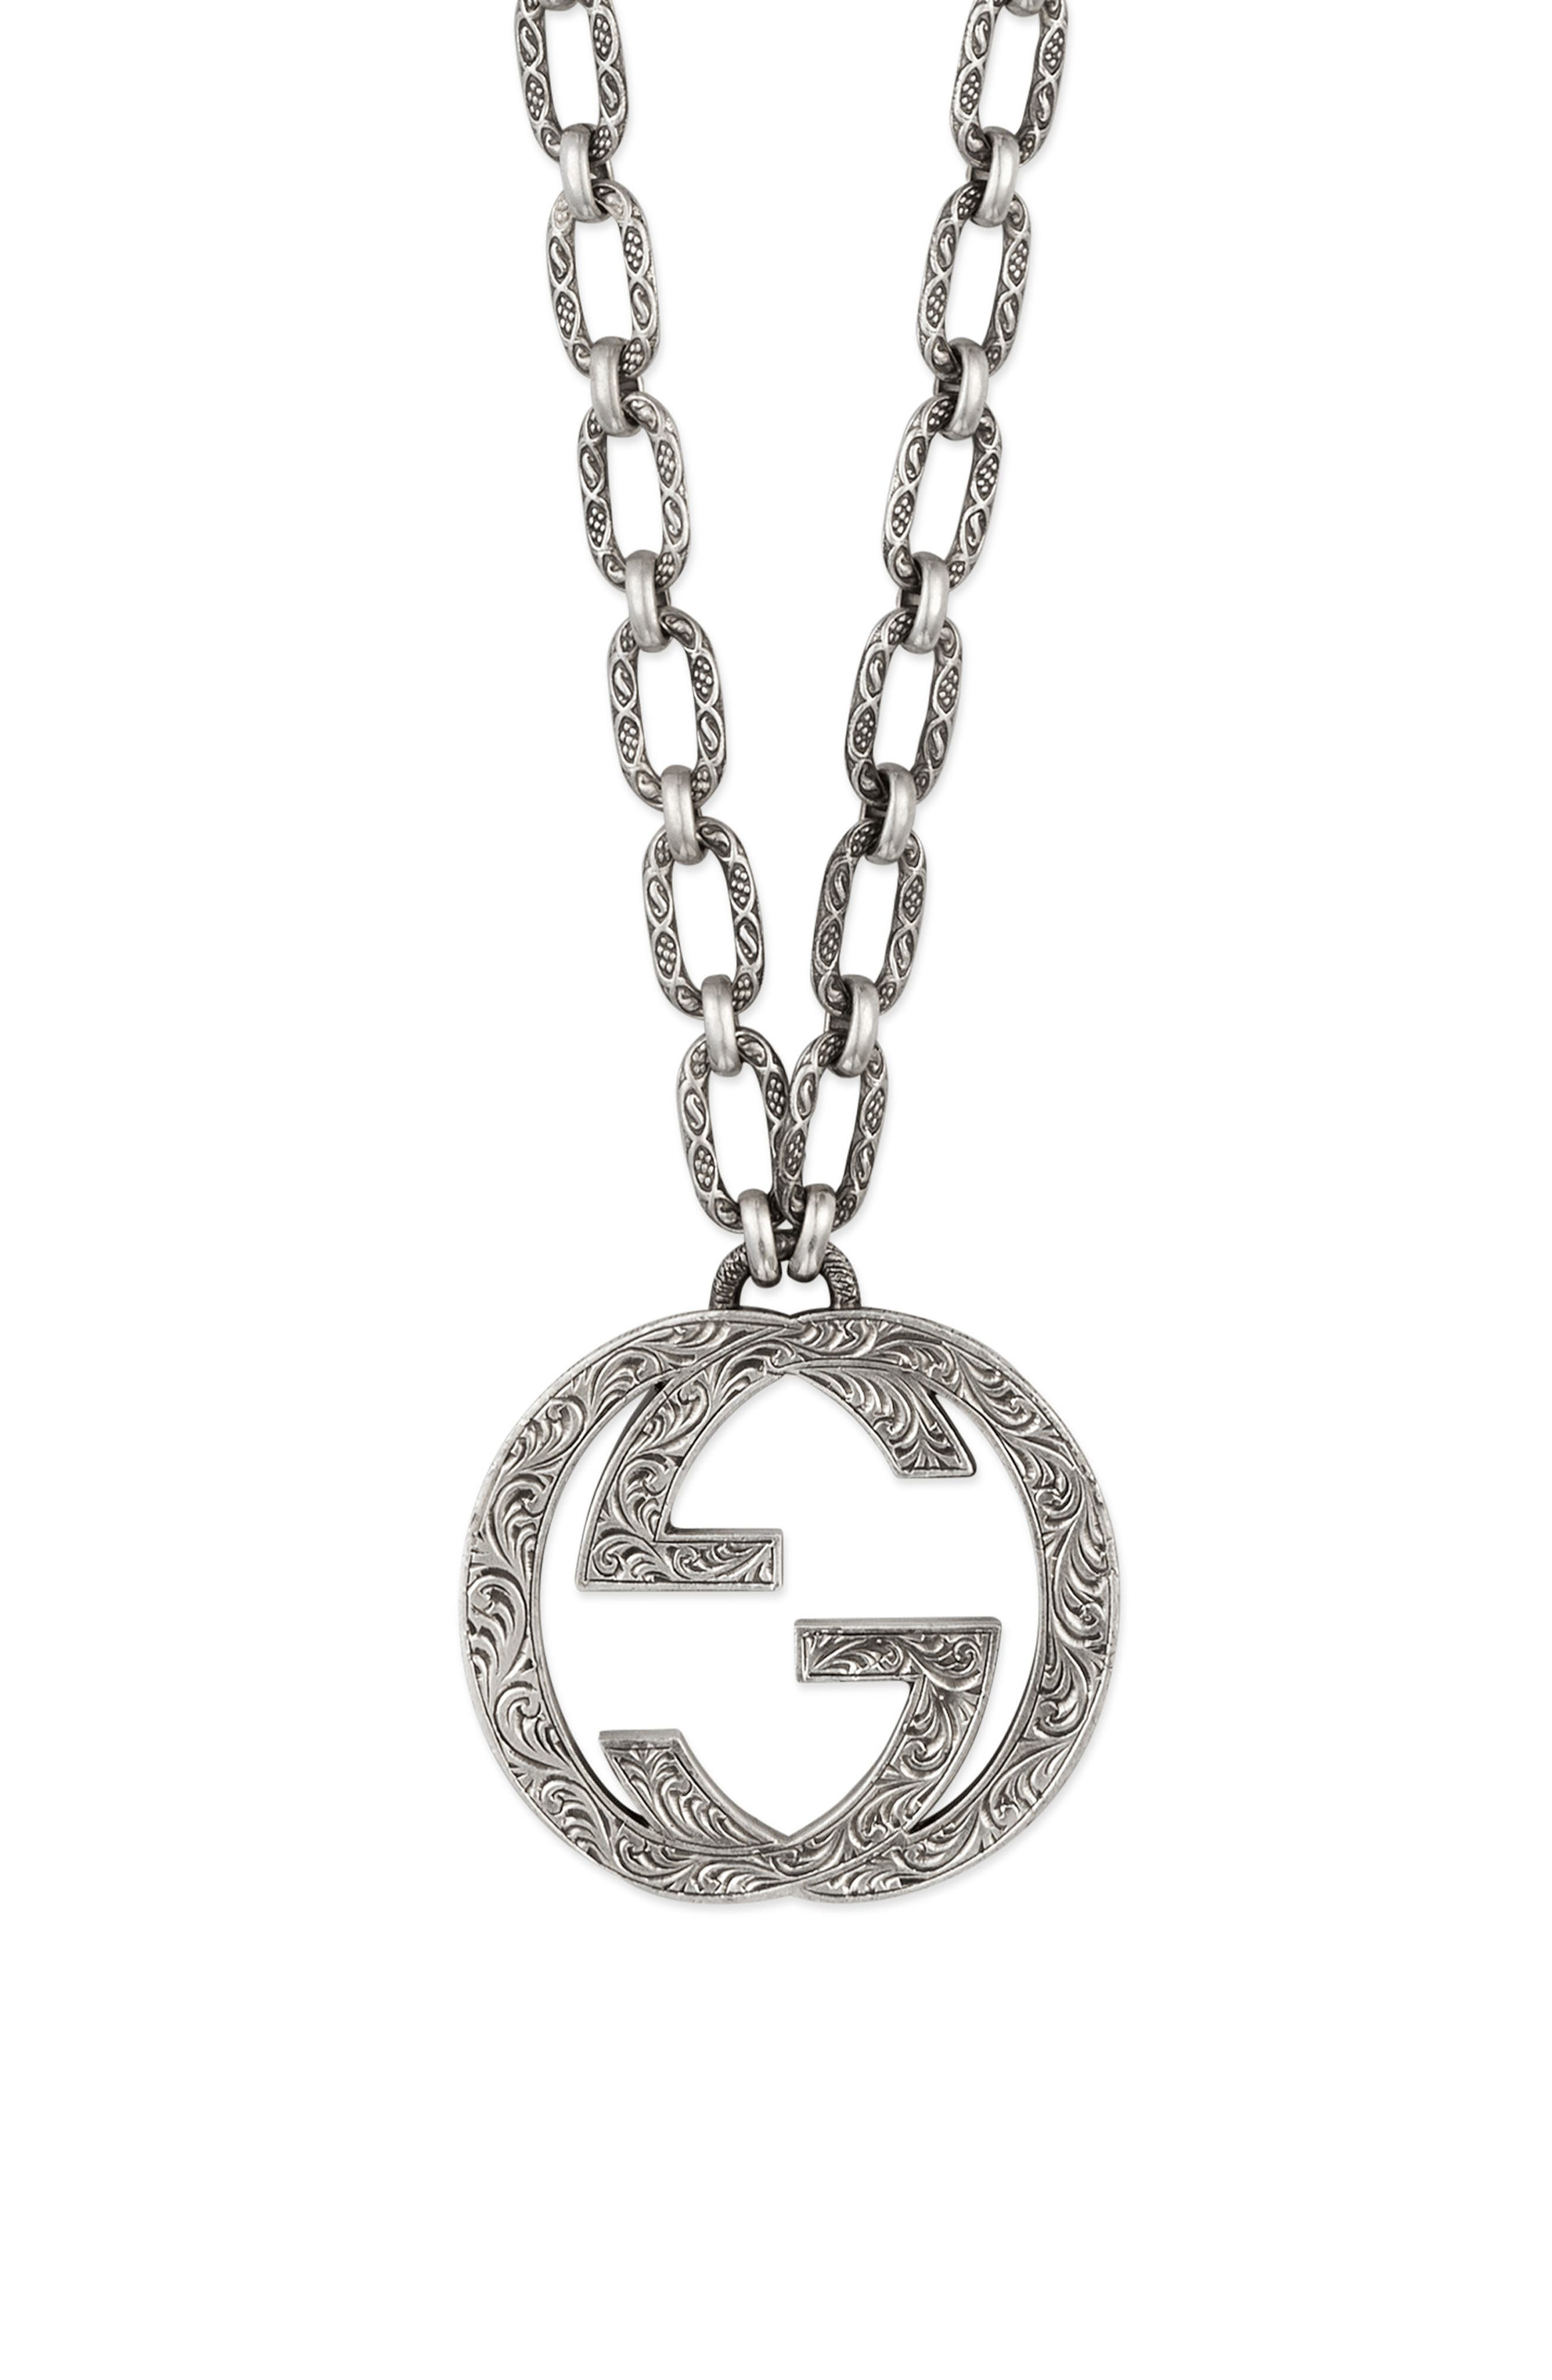 GG Logo Pendant Necklace,                             Main thumbnail 1, color,                             STERLING SILVER